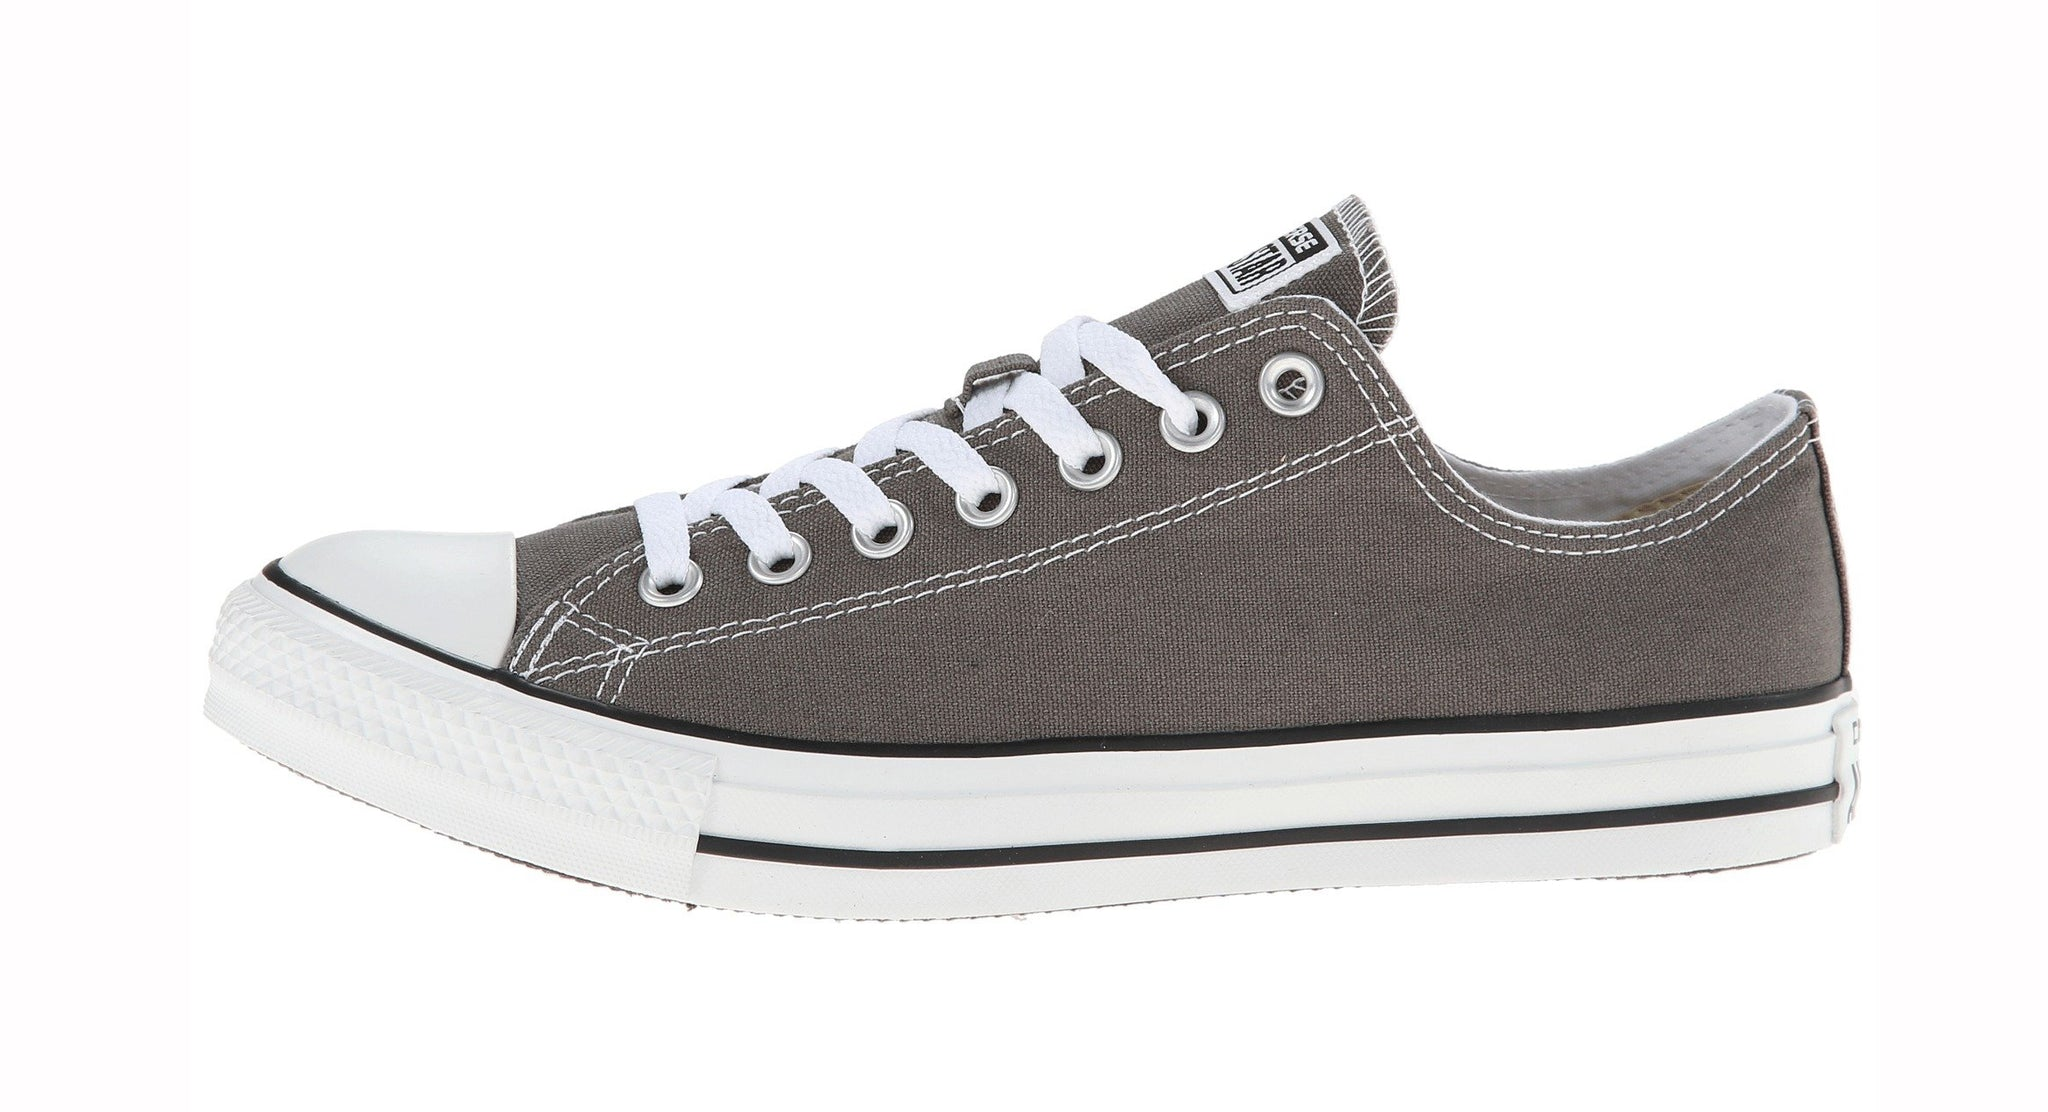 Converse All Star Charcoal Low Top Men's Shoes